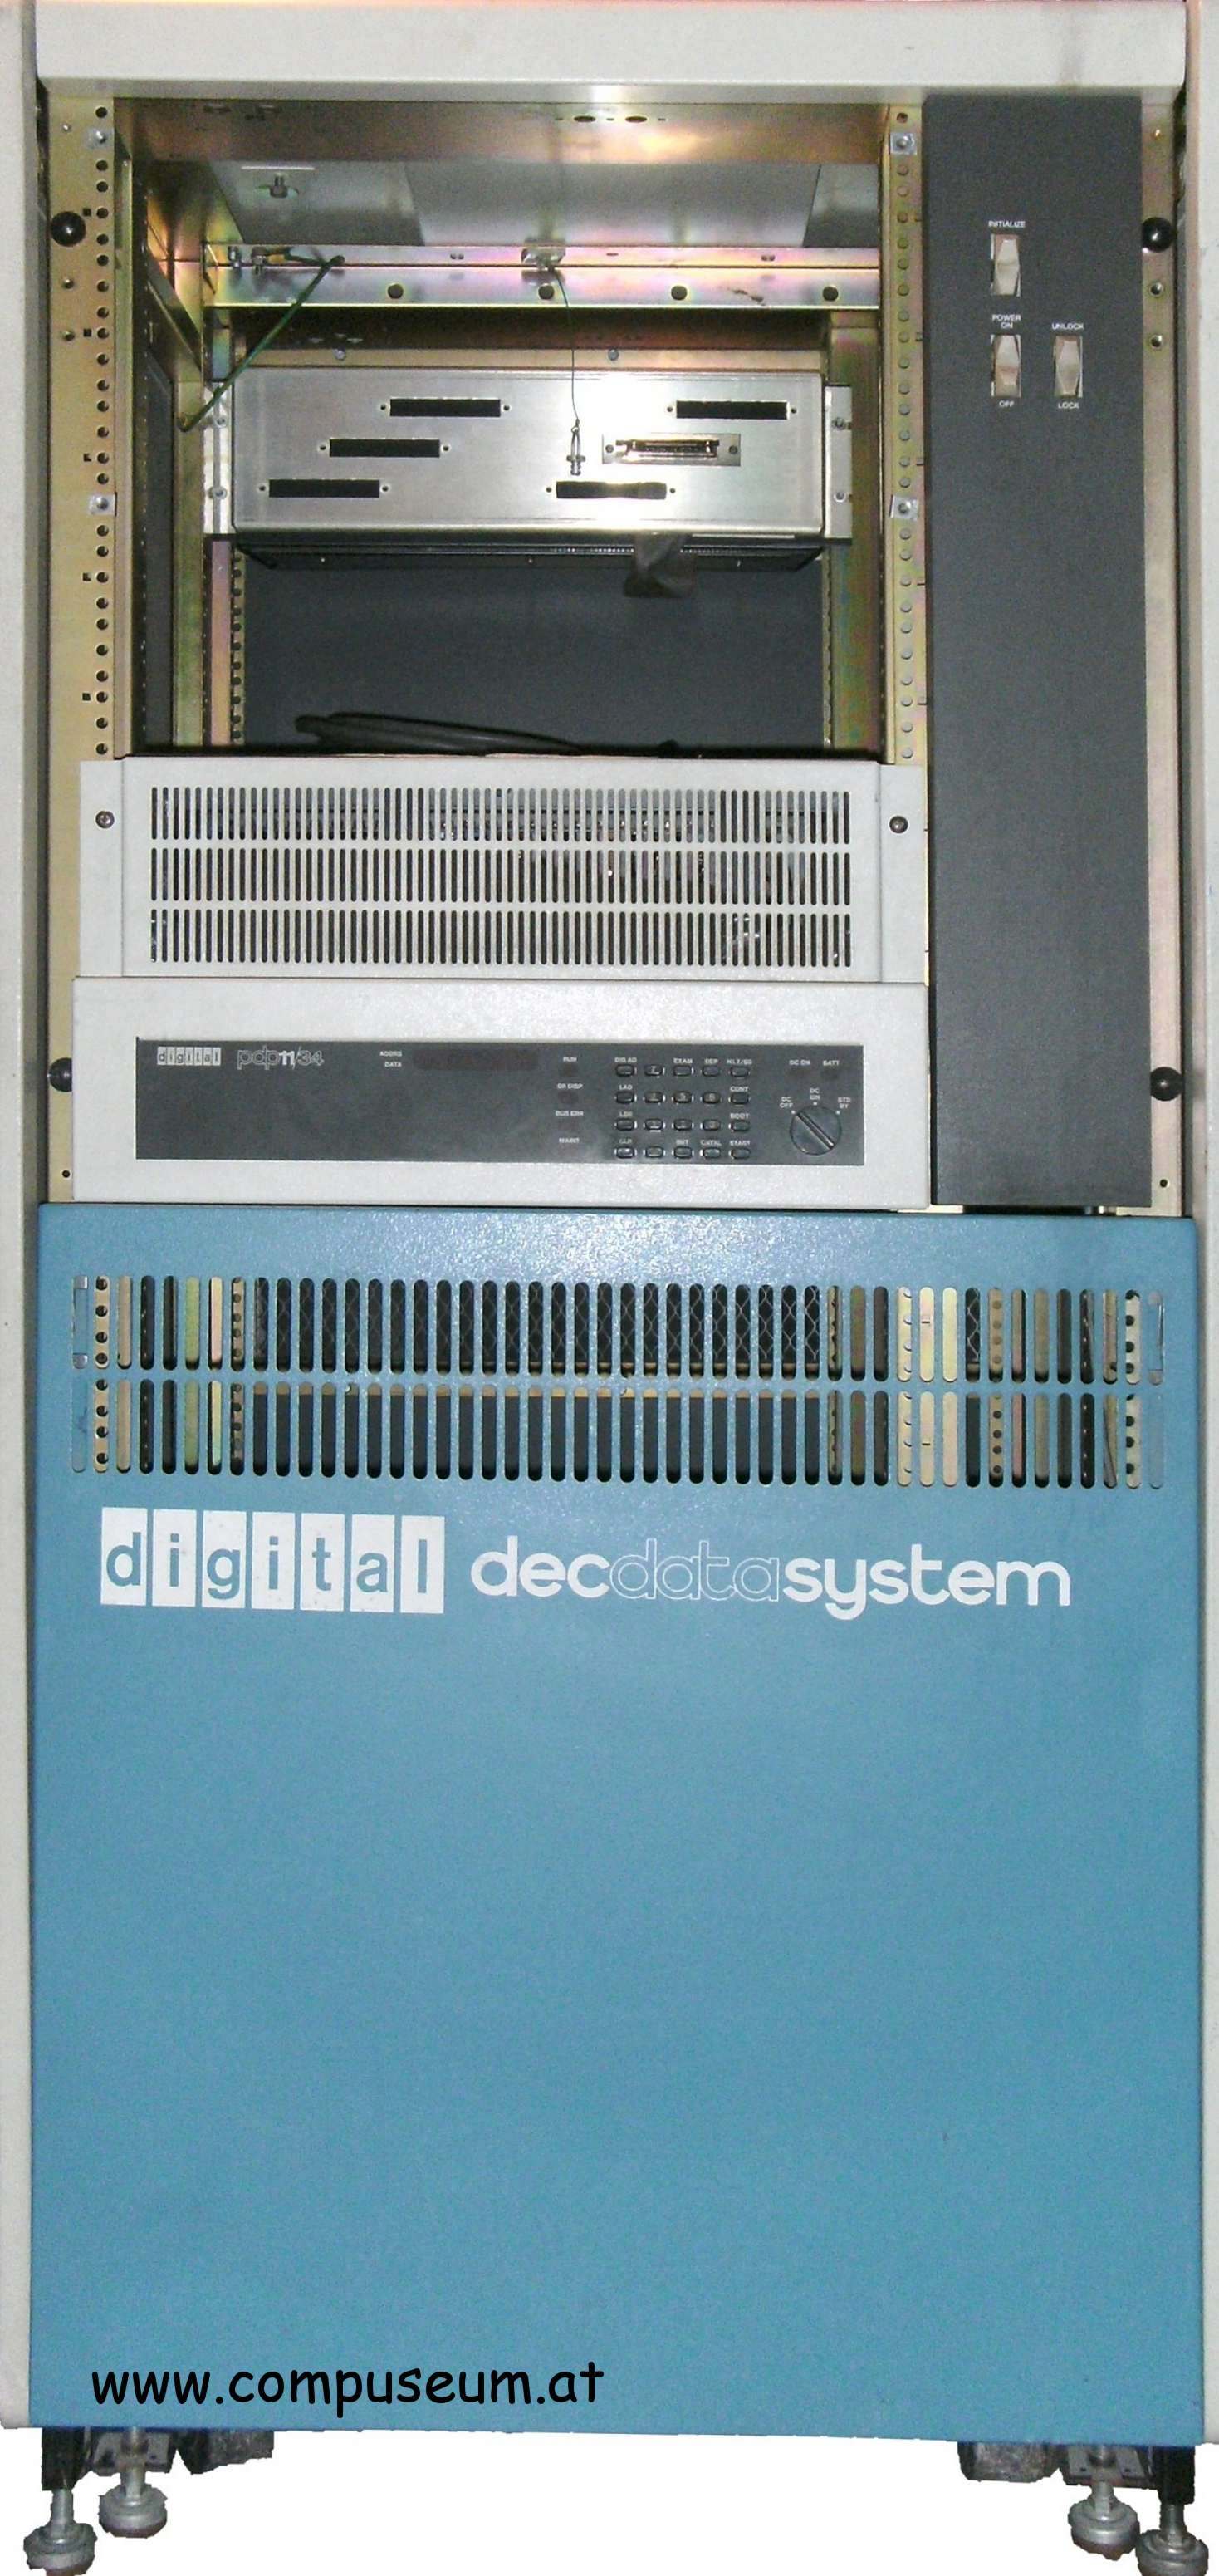 Pdp 11/34 (Dec Data System)